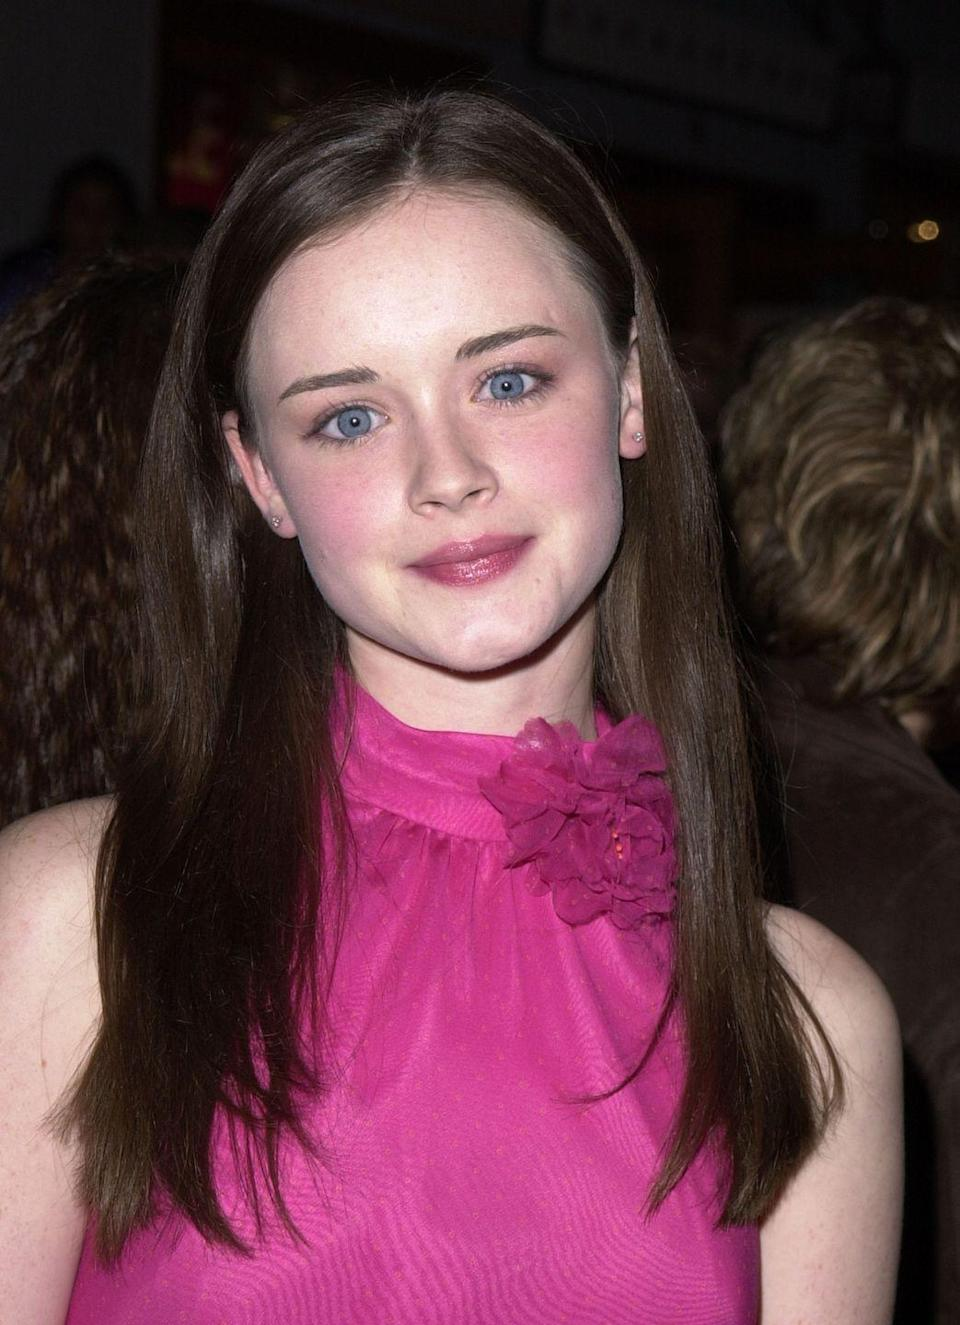 <p>Alexis Bledel landed her breakout role as Rory Gilmore when she was just 19 years old. While working on the show, Alexis began her career in film, starring in <em>Tuck Everlasting </em>and <em>The</em> <em>Sisterhood of the Traveling Pants. </em></p>